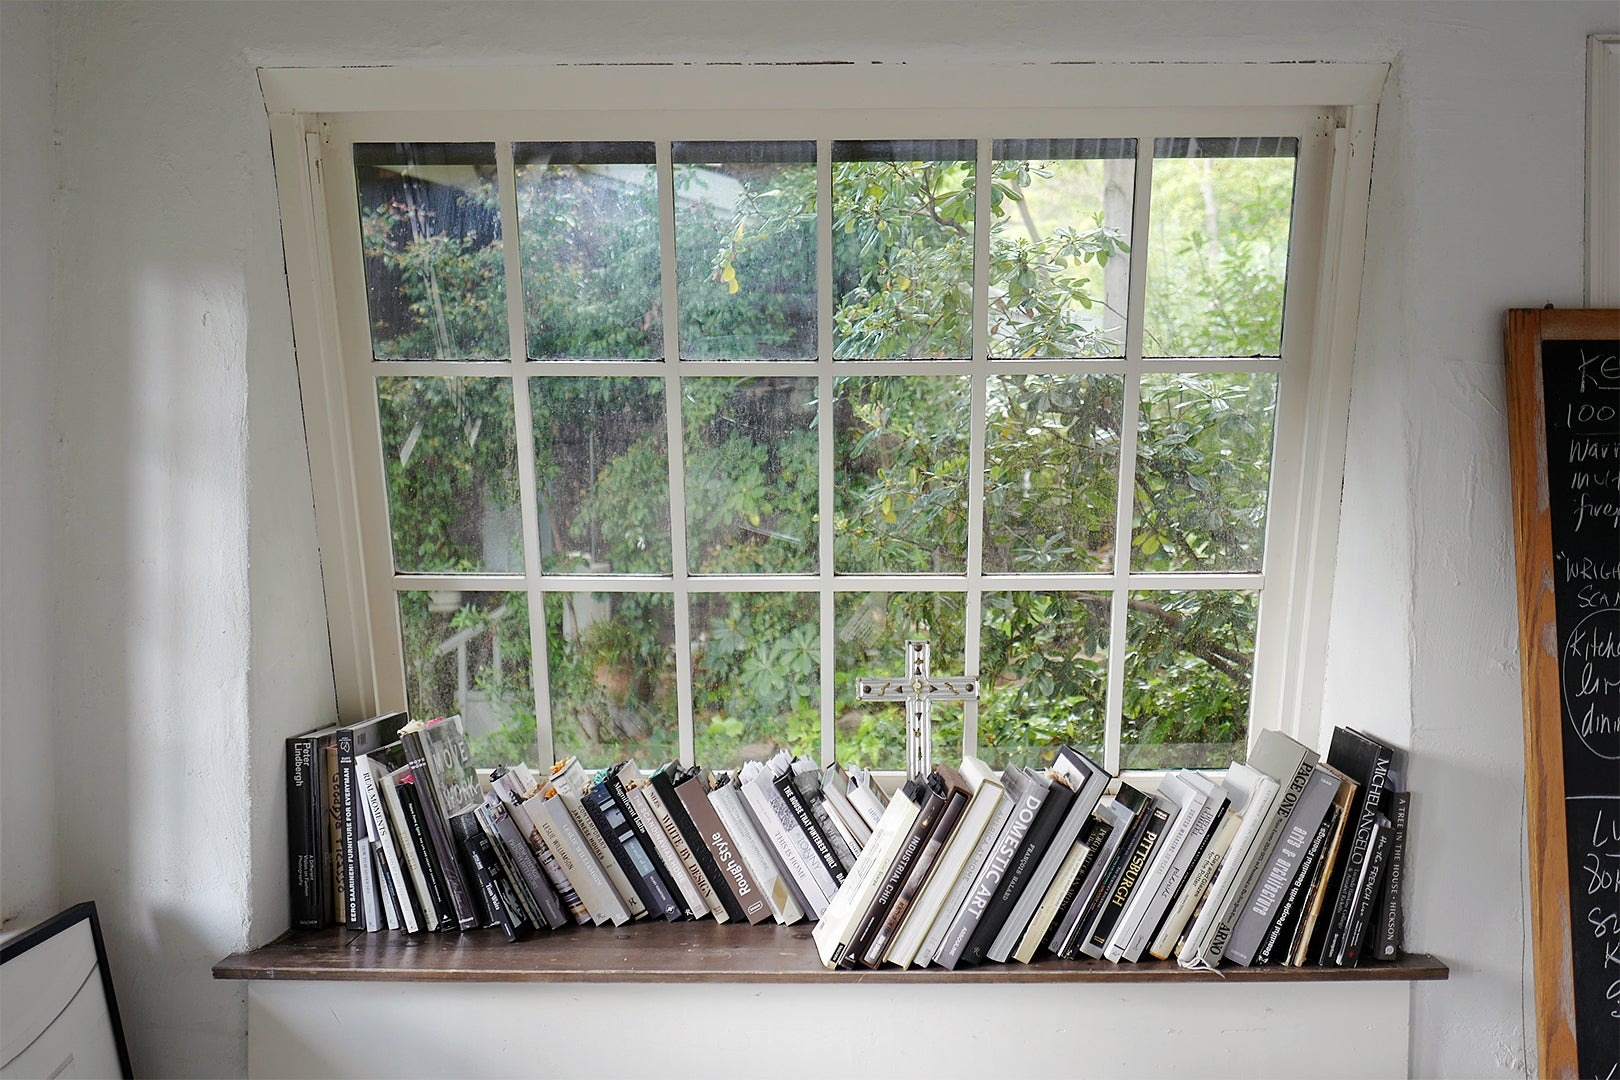 books stacked in window nook